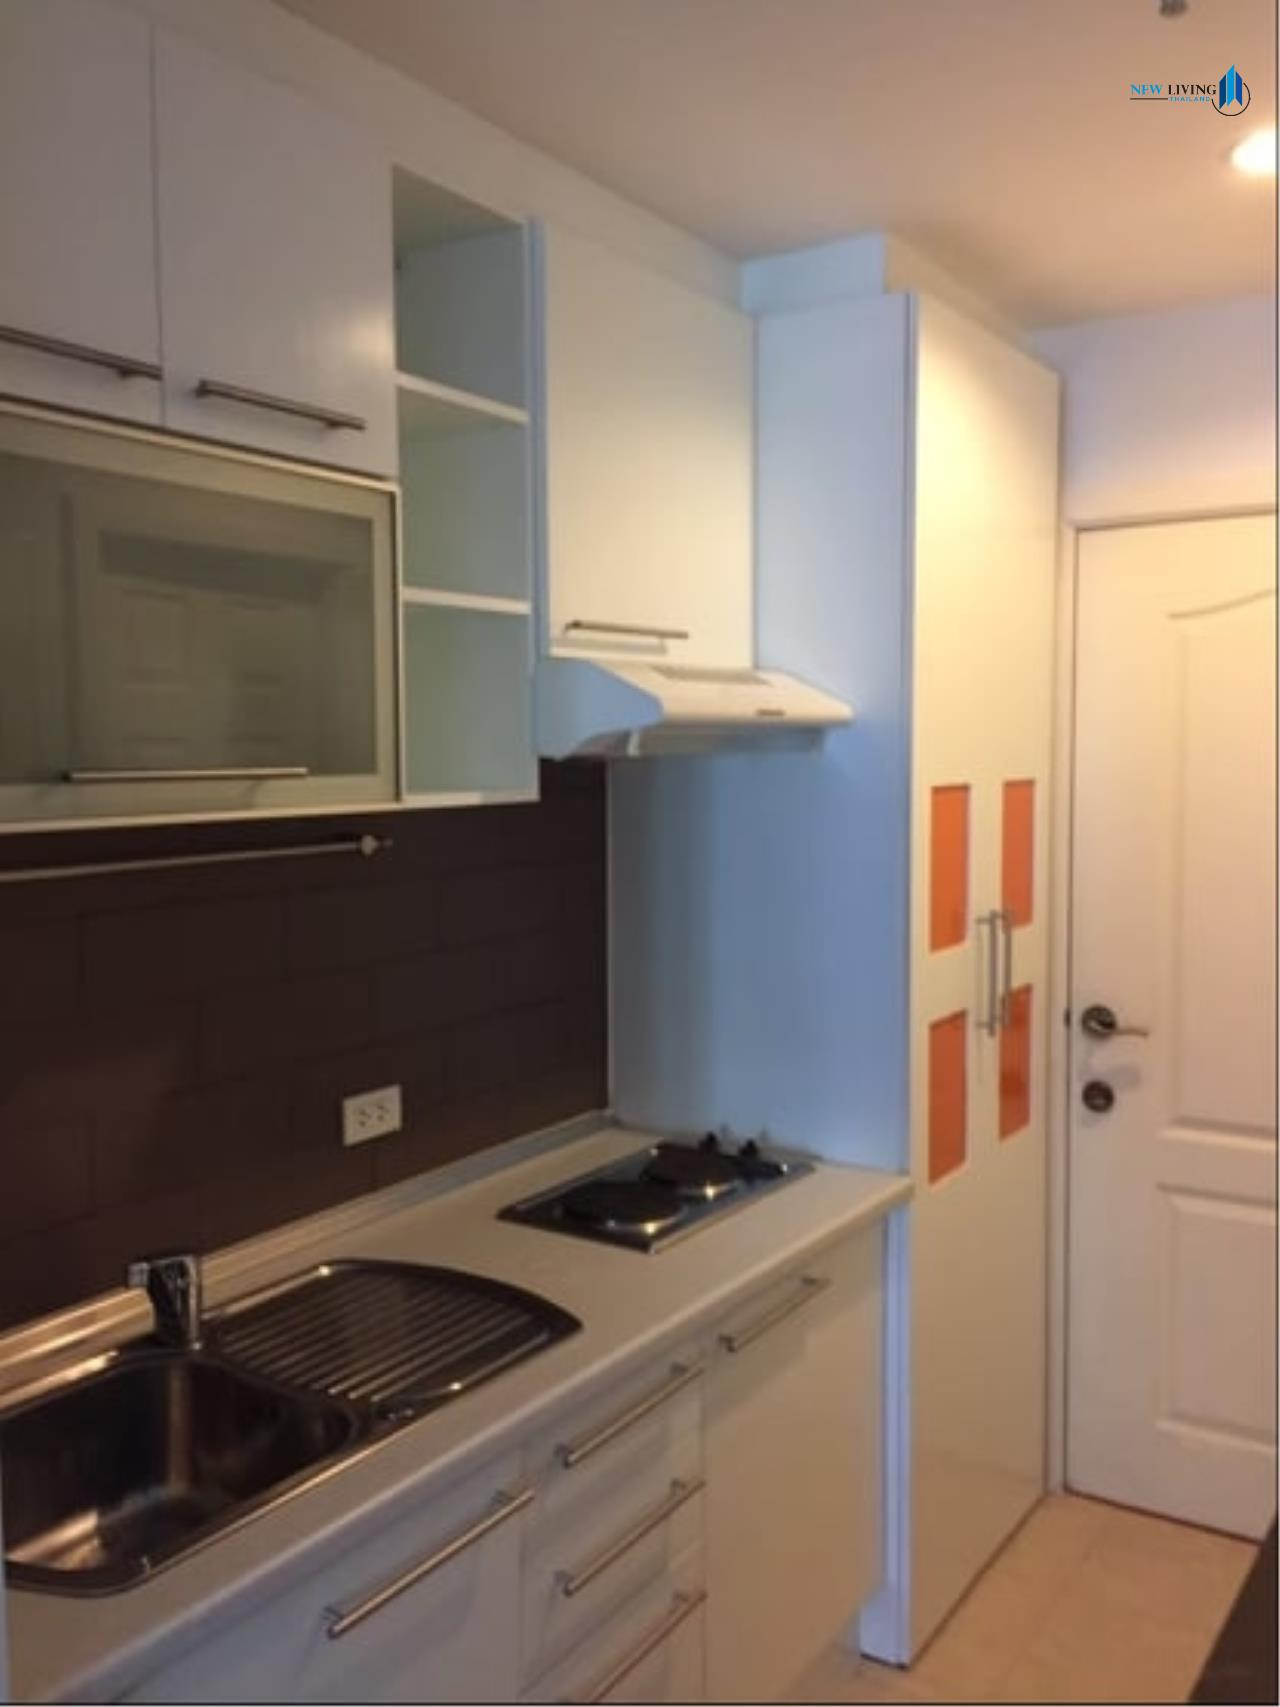 New Living Thailand Agency's **** Rental price !!! Grand park view asok 1 bedroom 31 sq.m. 2